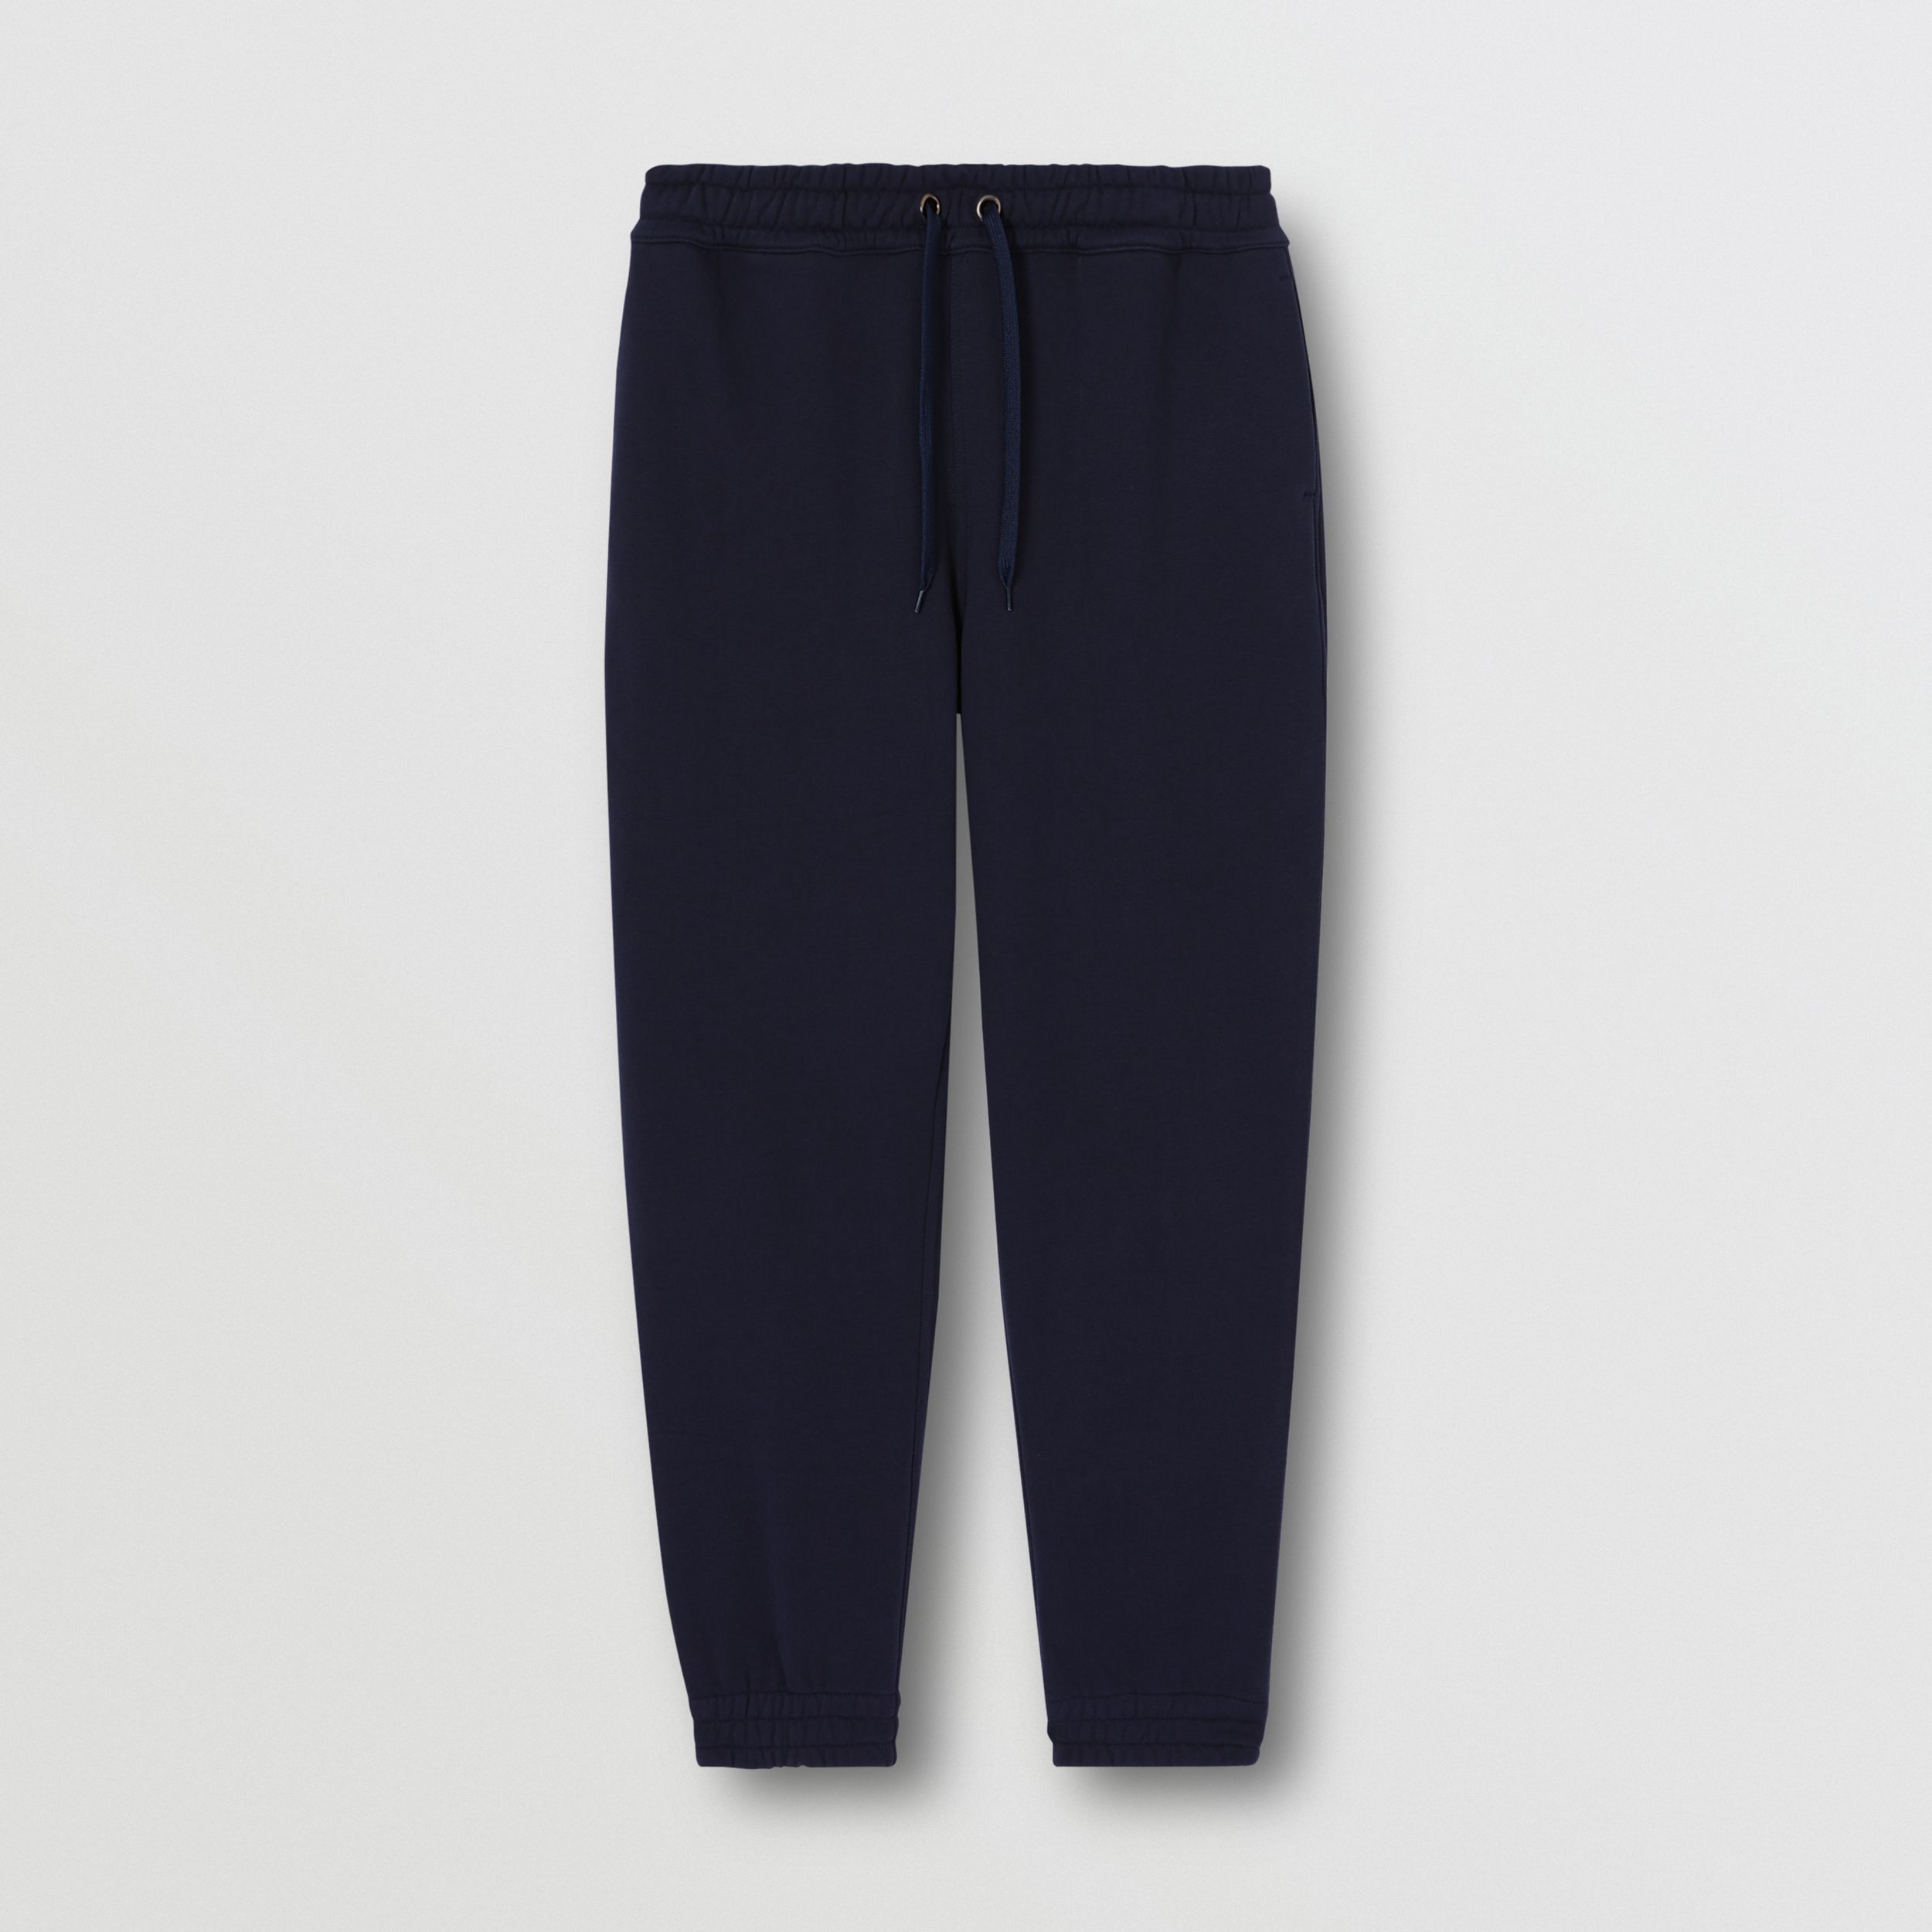 Logo Appliqué Cotton Trackpants in Navy - Men | Burberry - 4